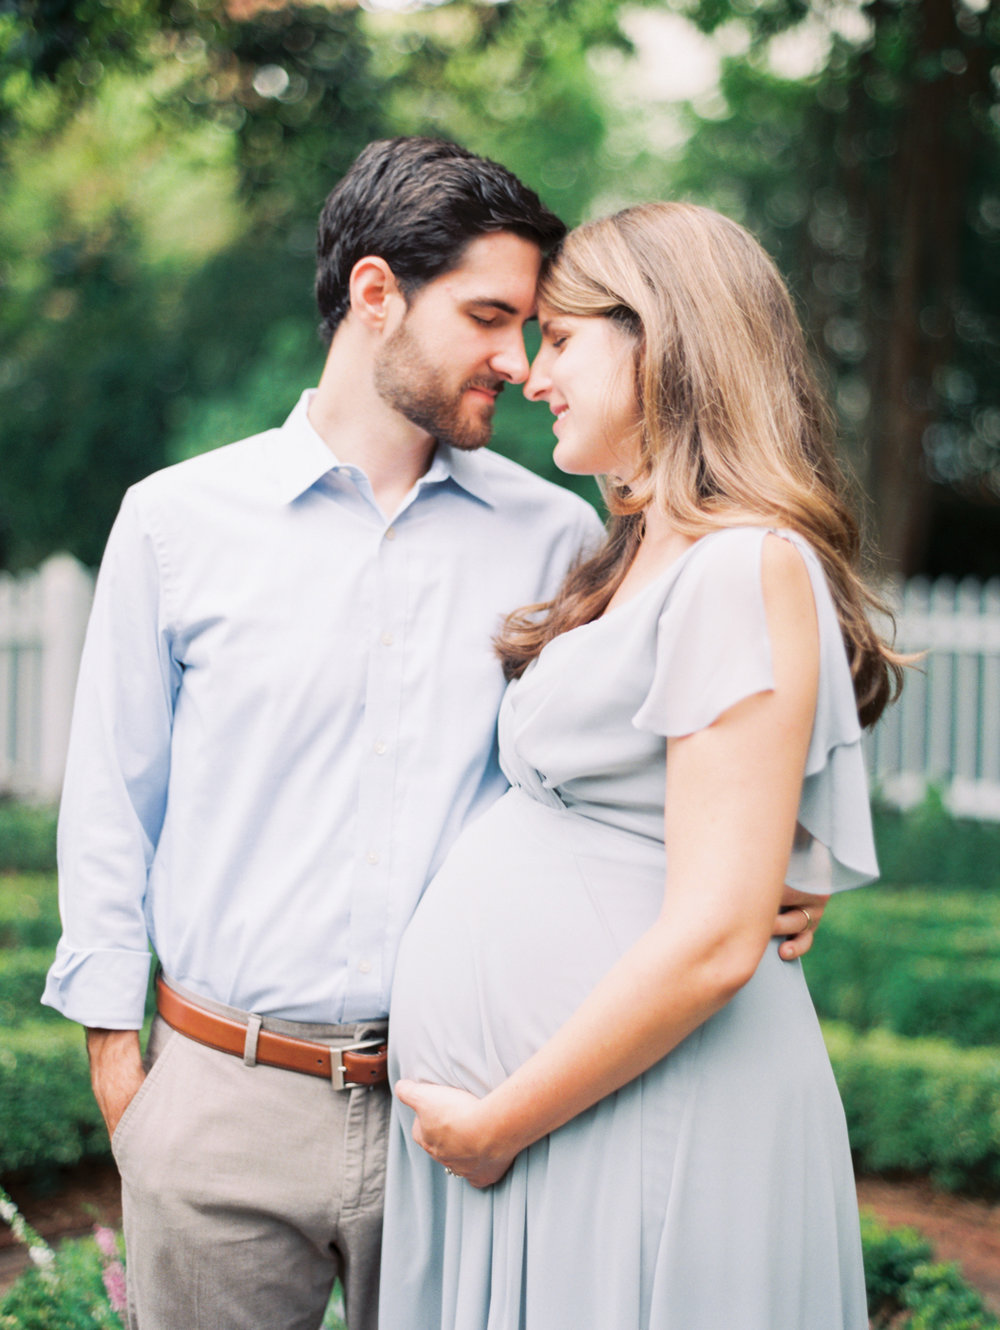 shackleford maternity four corners photography athens maternity photographer anna shackleford photography atlanta film photographer maternity photography-18.jpg